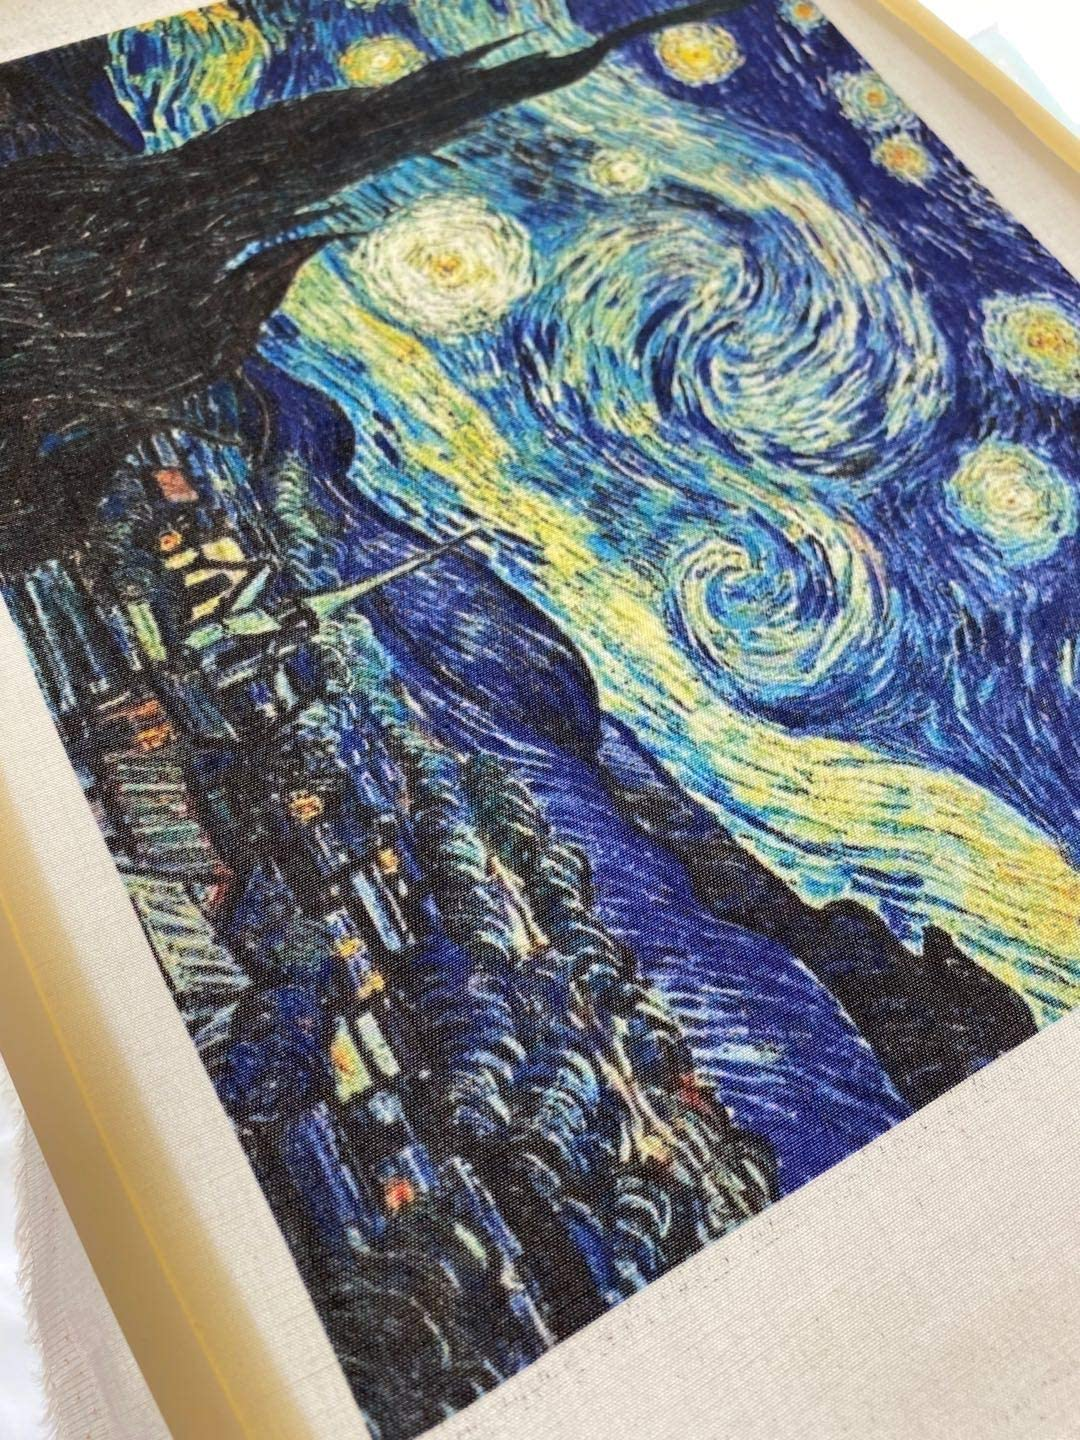 7 pcs of 20x25cm Cotton Twill Fabric Printed Painting of Van Gogh Cotton Twill Fabric for Sewing,Twill Fabric for Making Bags, Quilting,Wall Decor,Cotton DIY Sewing Materials Fabric